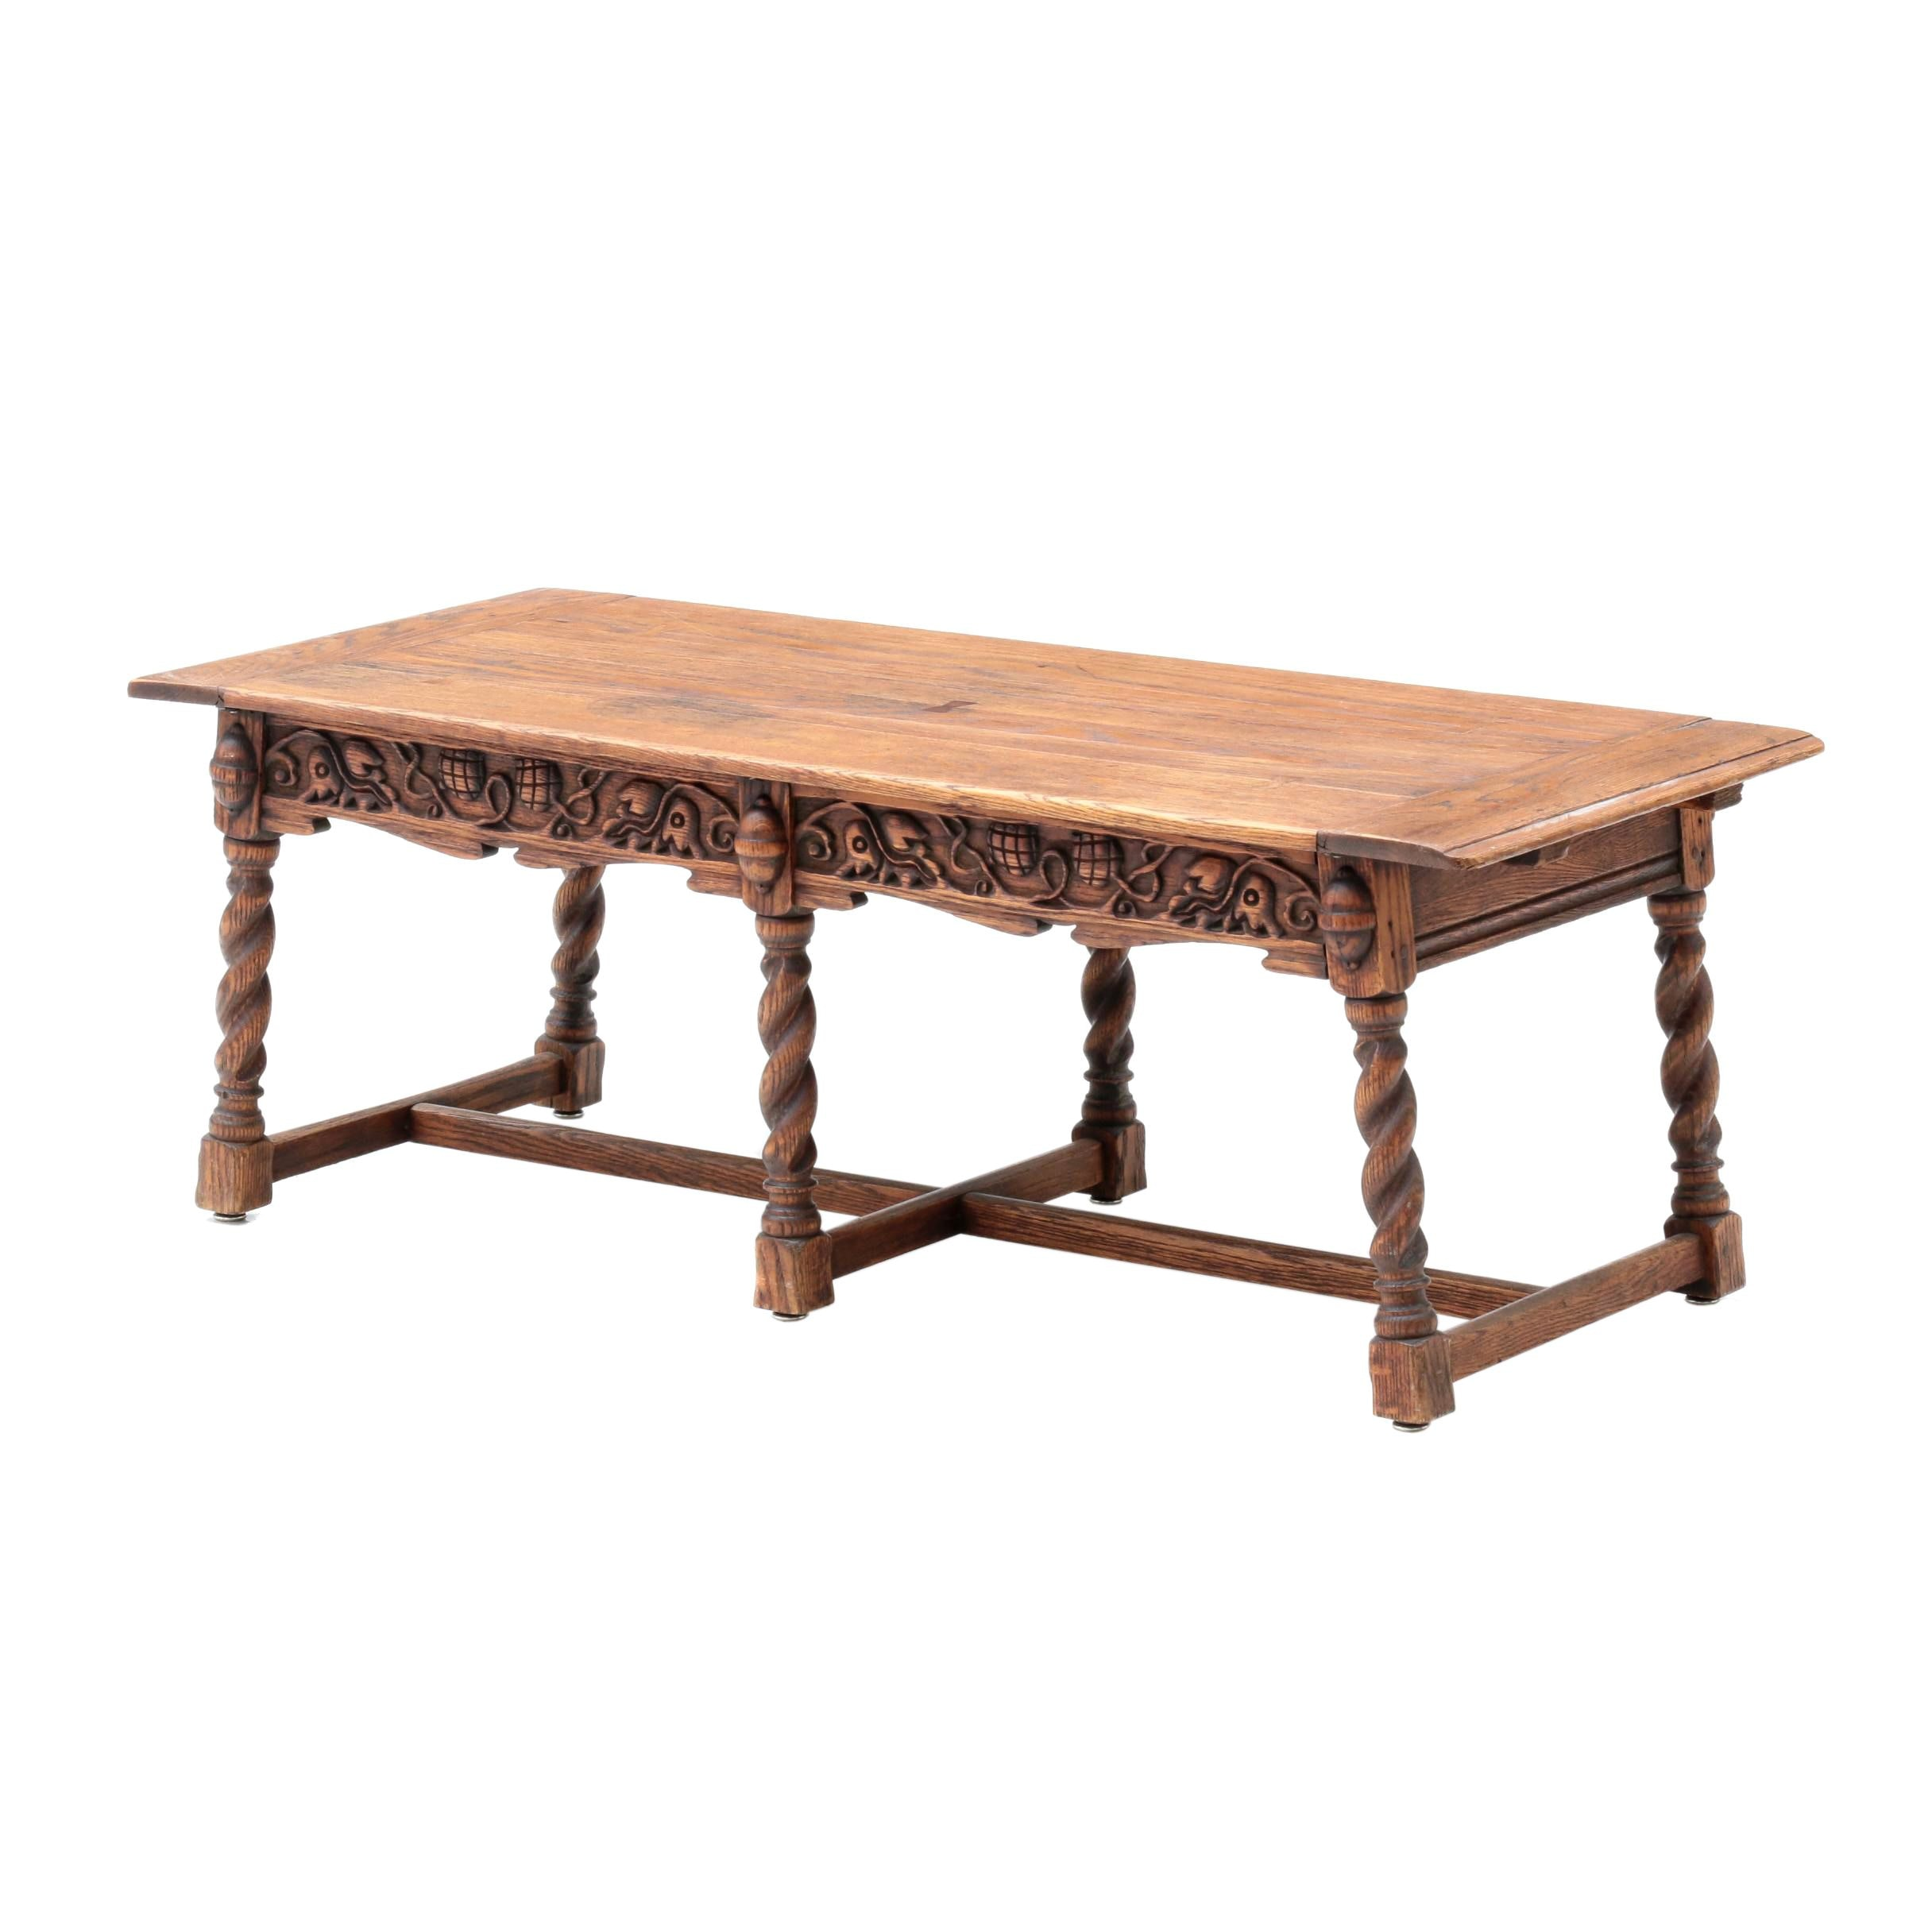 "Renaissance Revival Style Coffee Table ""Feudal Oak"" by Jamestown Lounge Co."